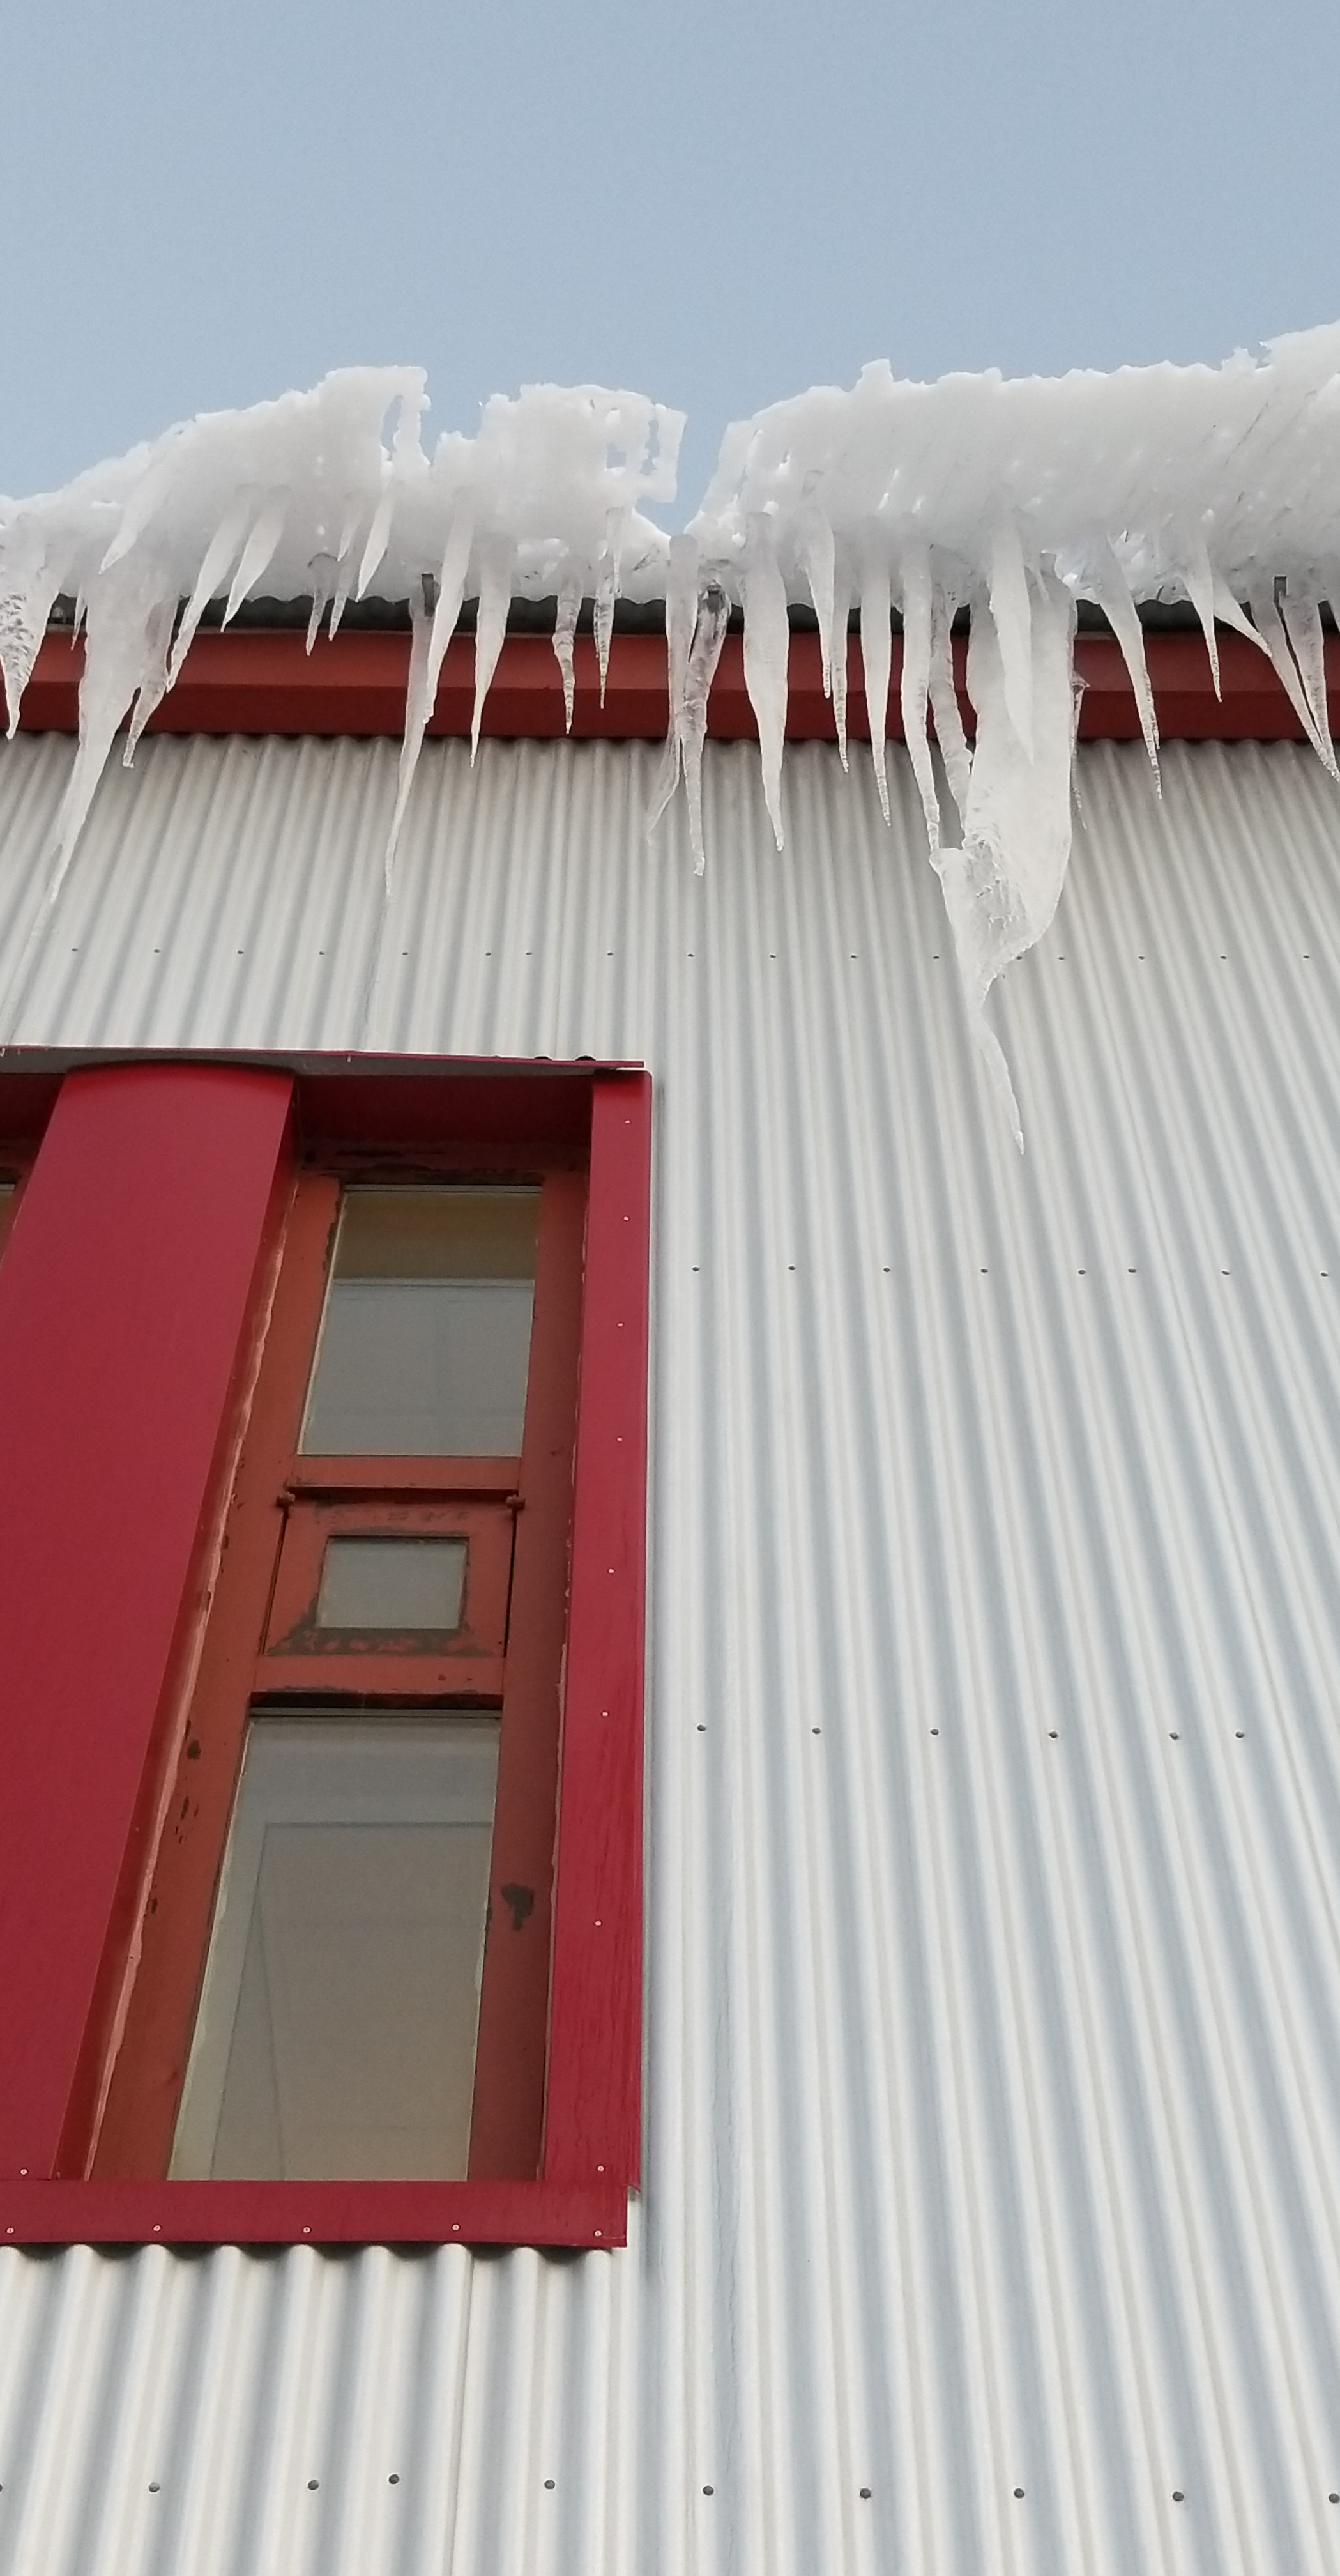 Icicles falling from a rooftop in Bolungarvík, Westfjords